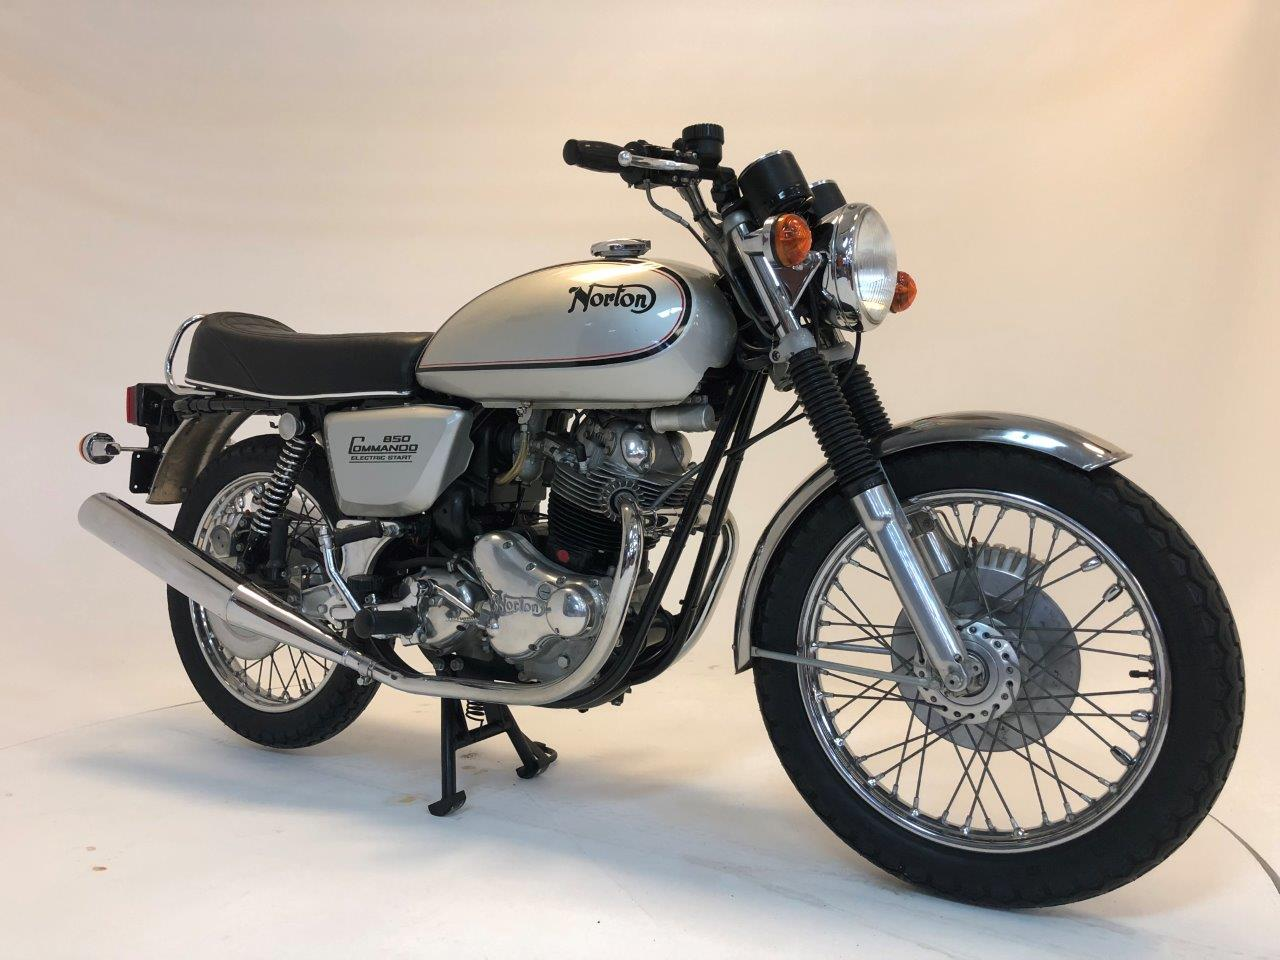 1977 Norton Commando 850cc Motorcycle